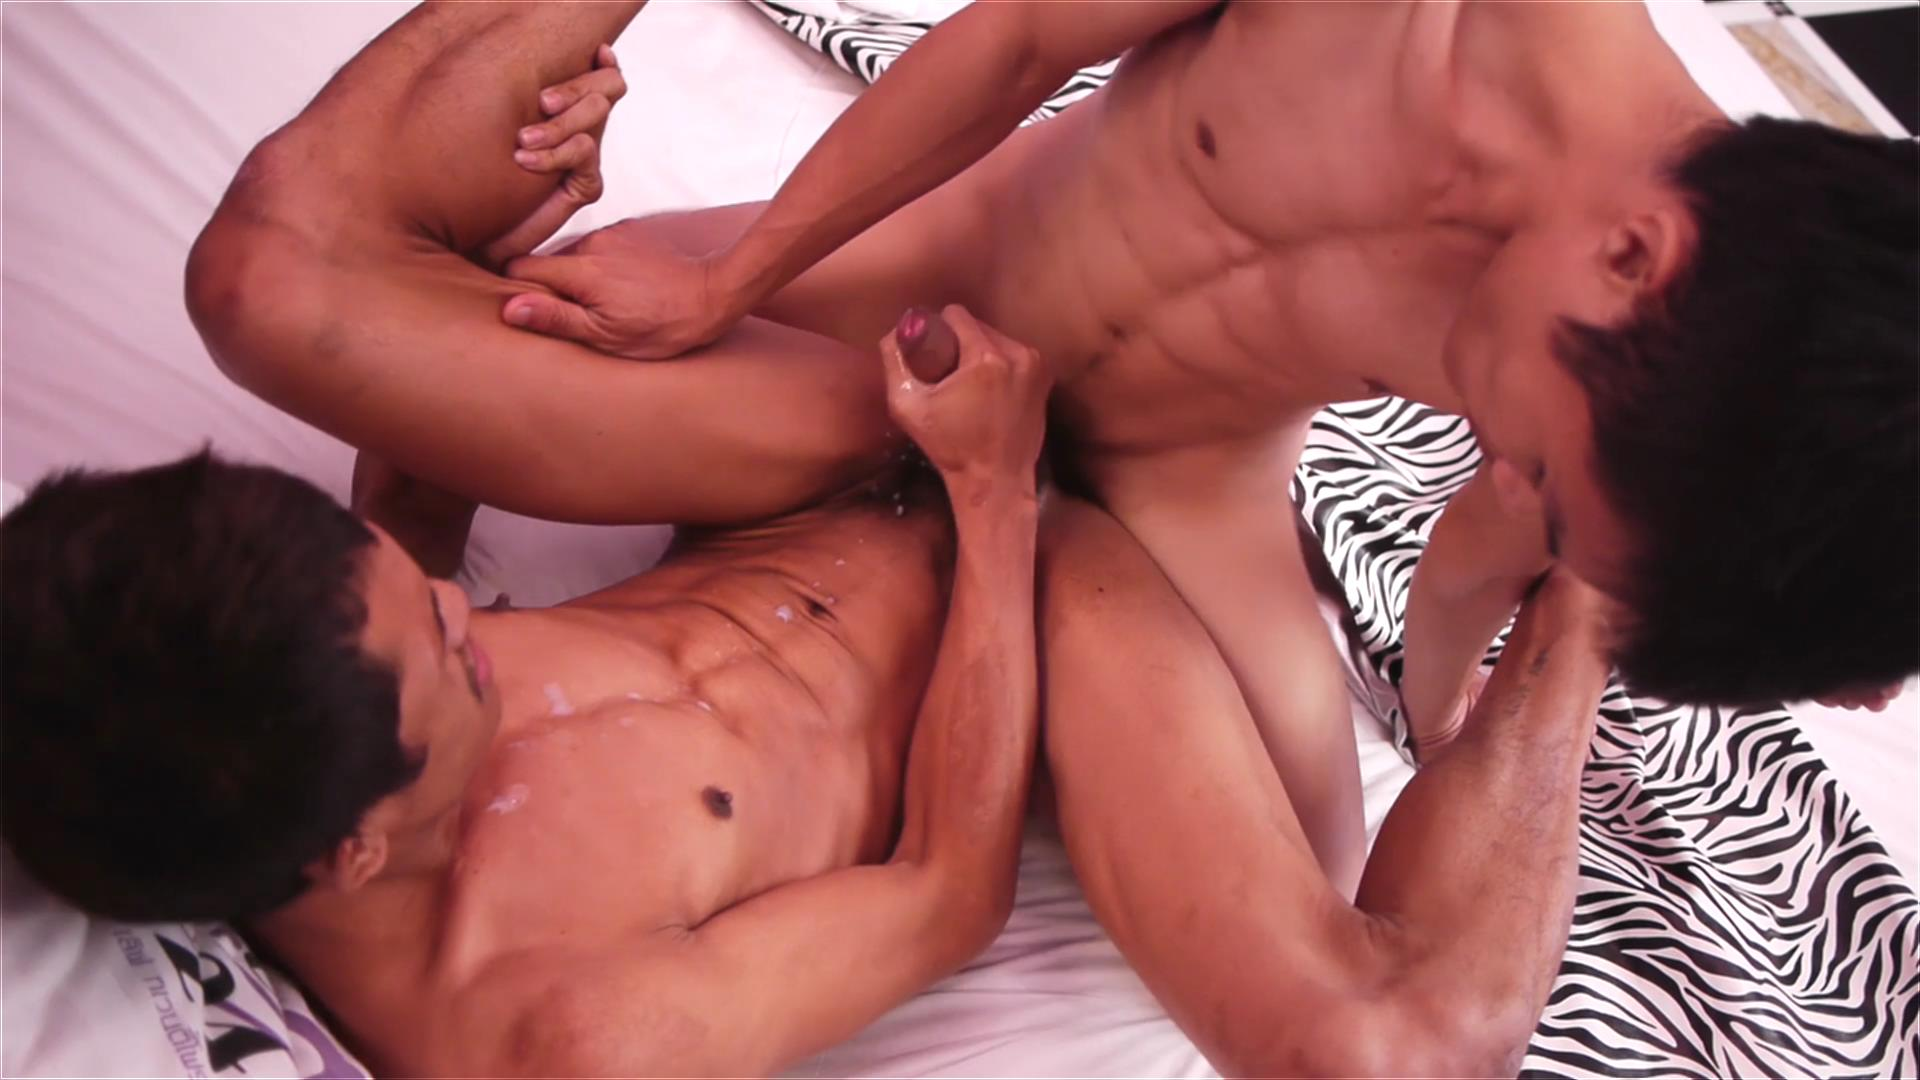 Robin and David Bareback - AsiaBoy definition of recreational sex